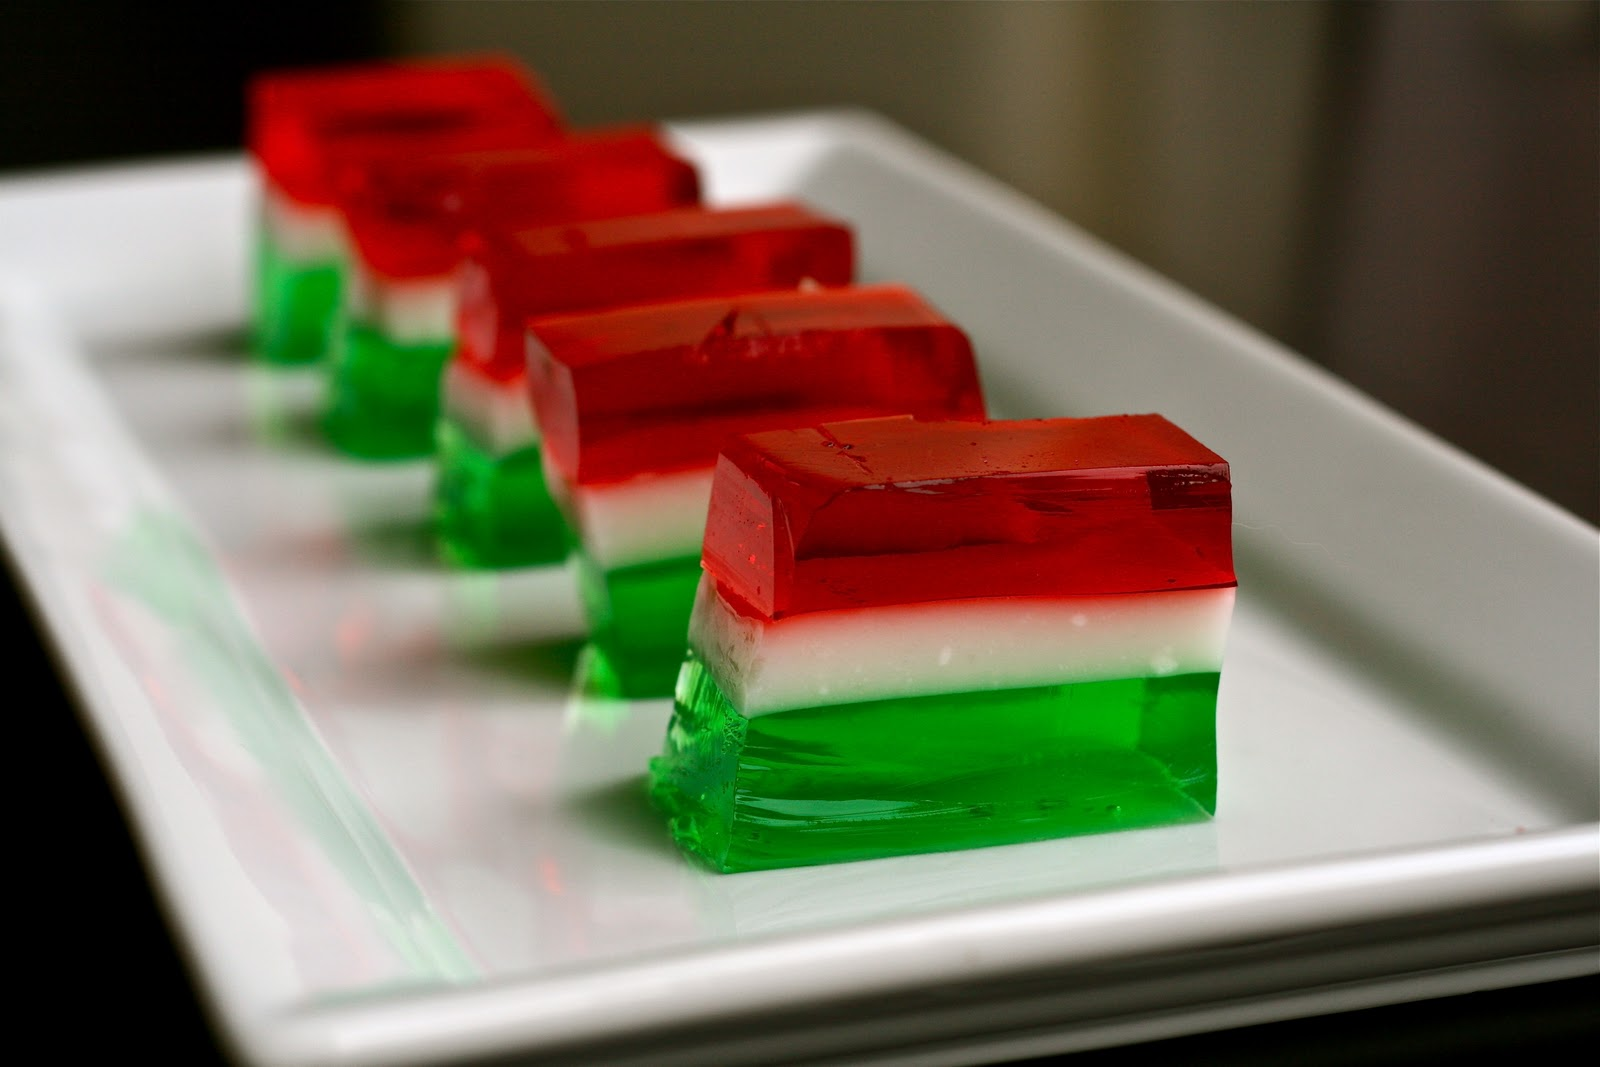 Jello shots with fruit inside - Saturday December 10 2011